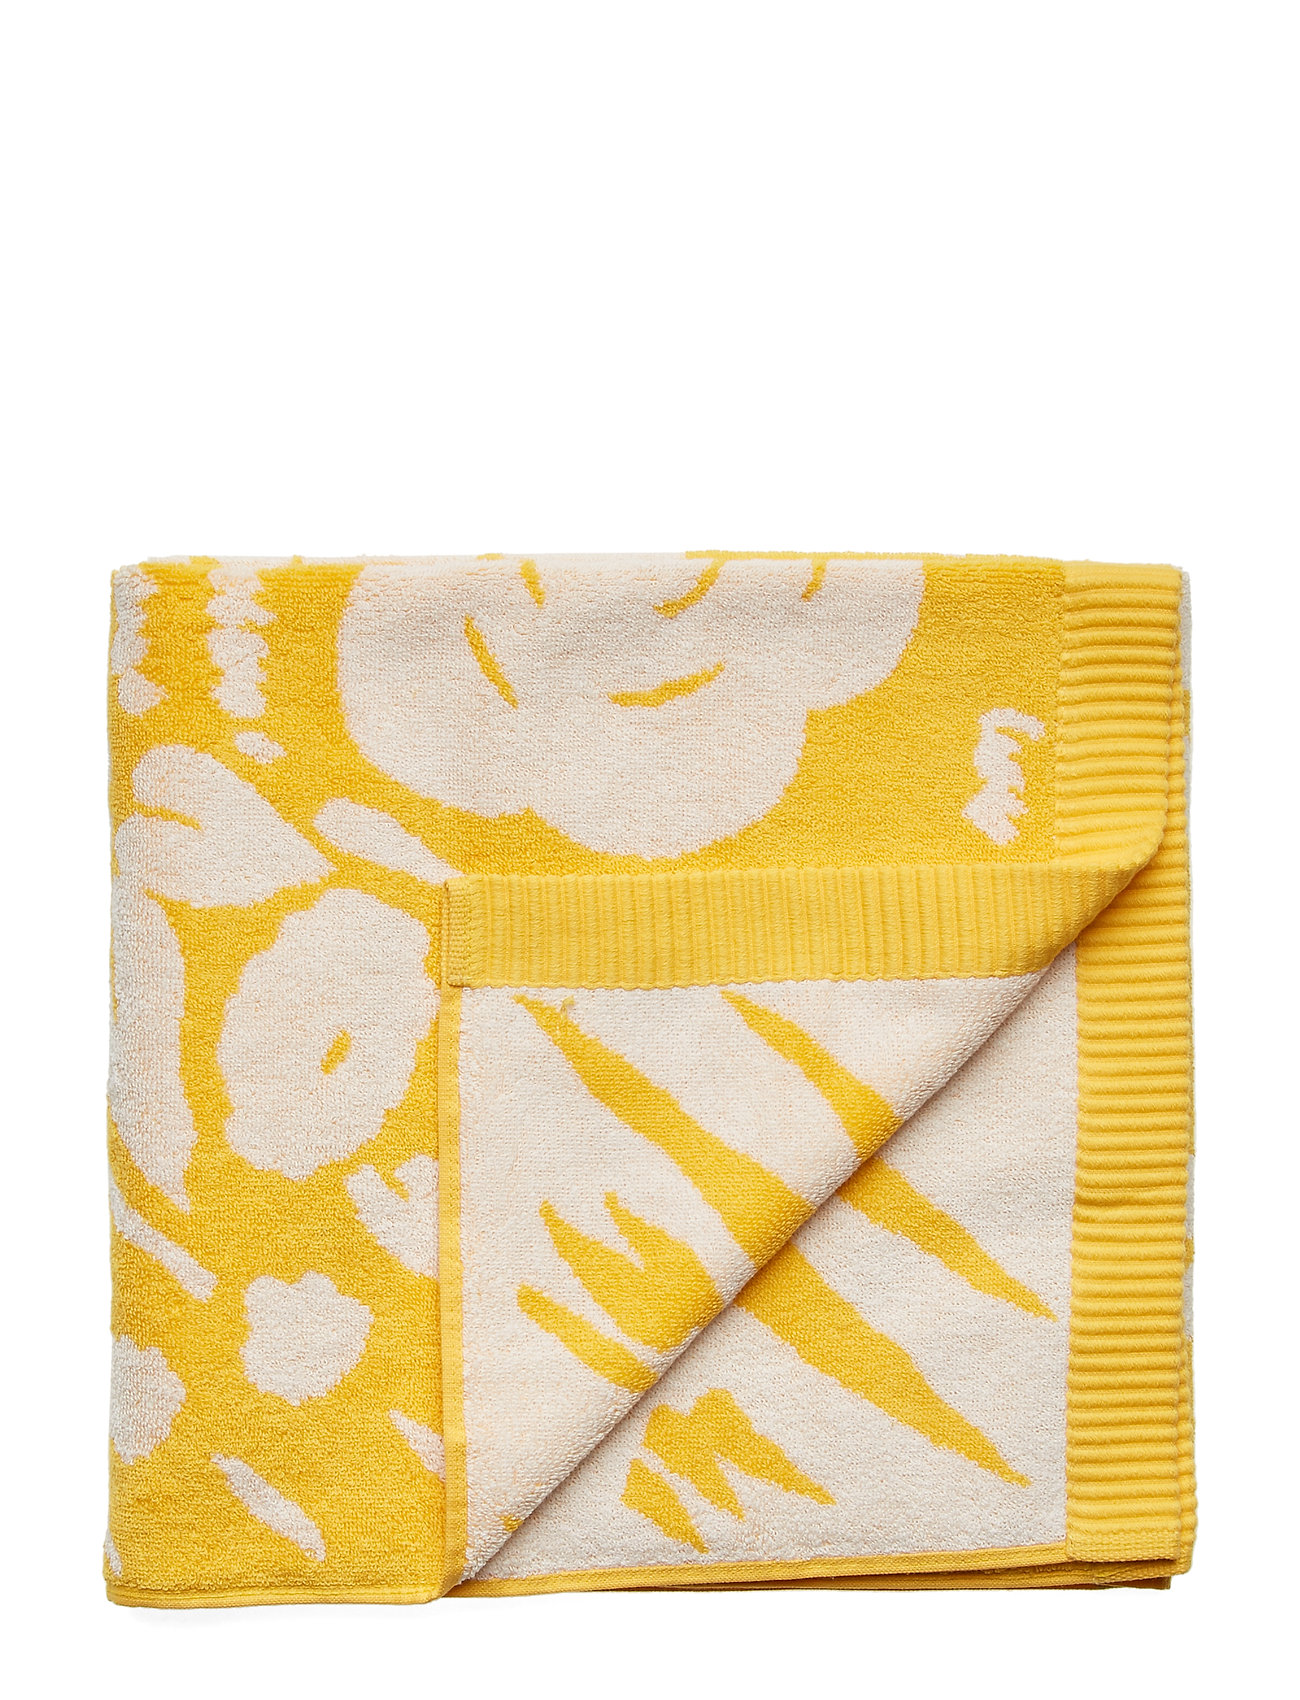 Marimekko Home ONNI BATHTOWEL - YELLOW, WHITE